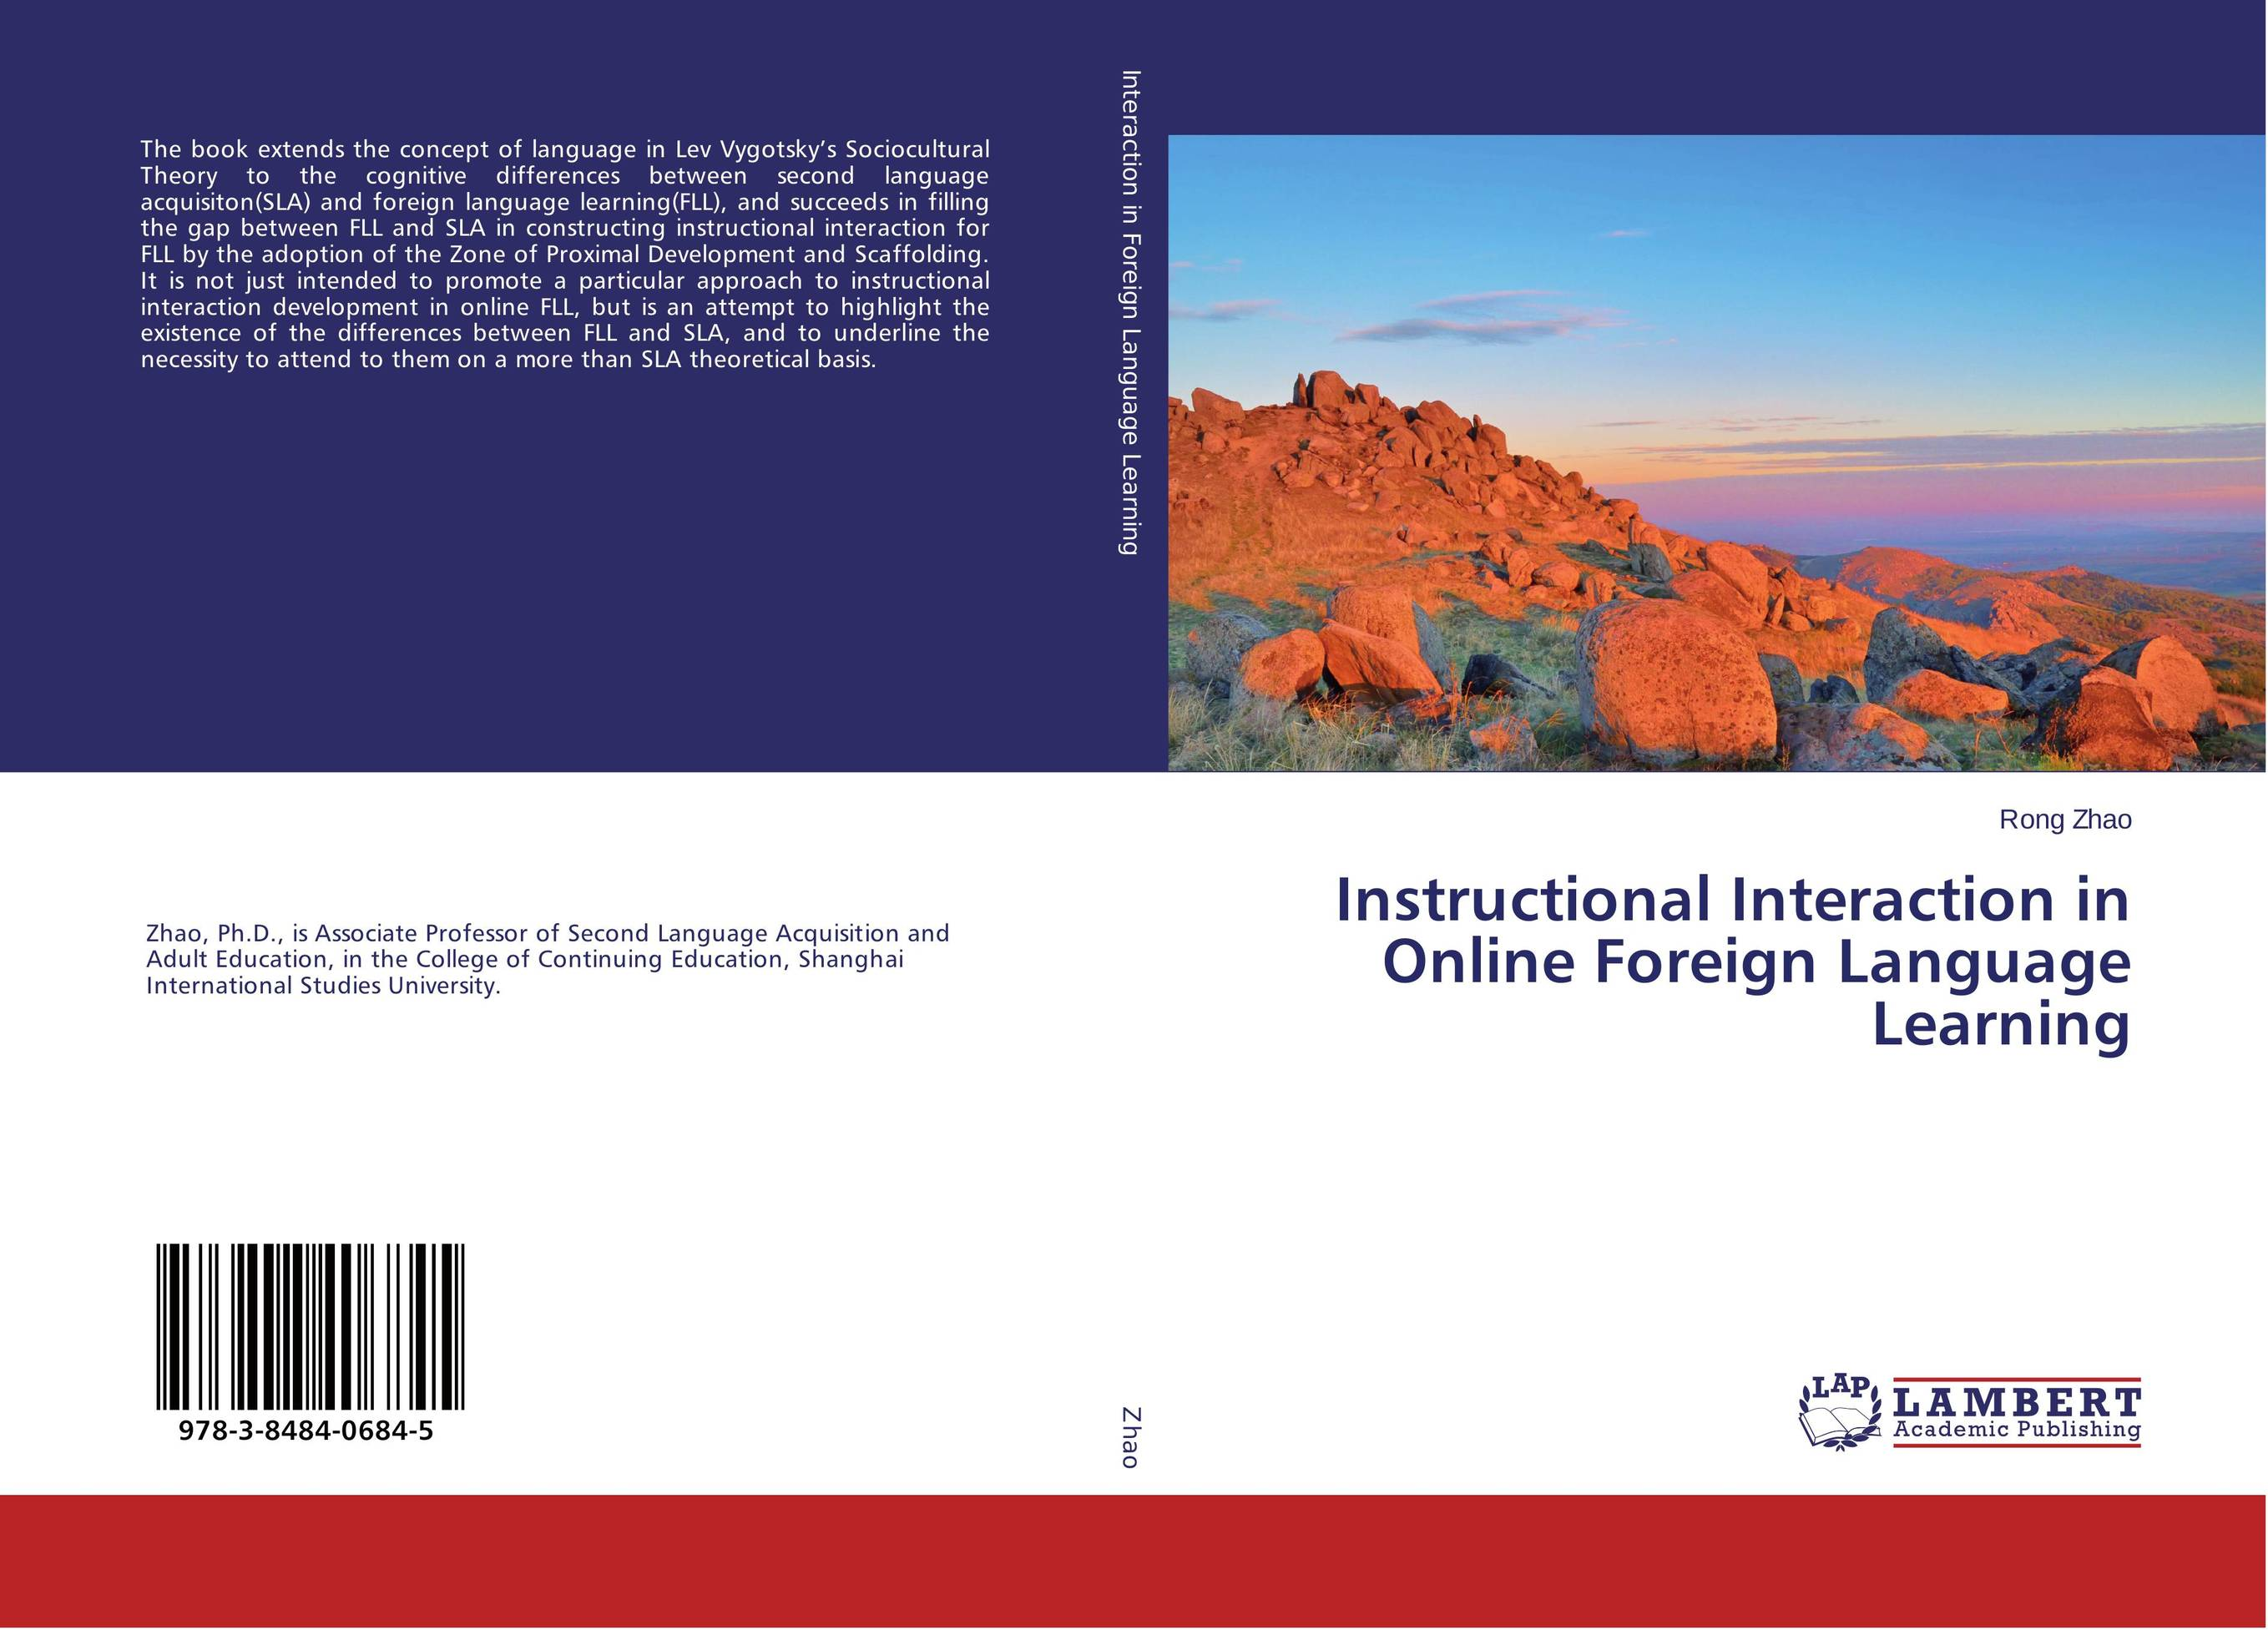 Instructional Interaction in Online Foreign Language Learning gap ga020ewvdp16